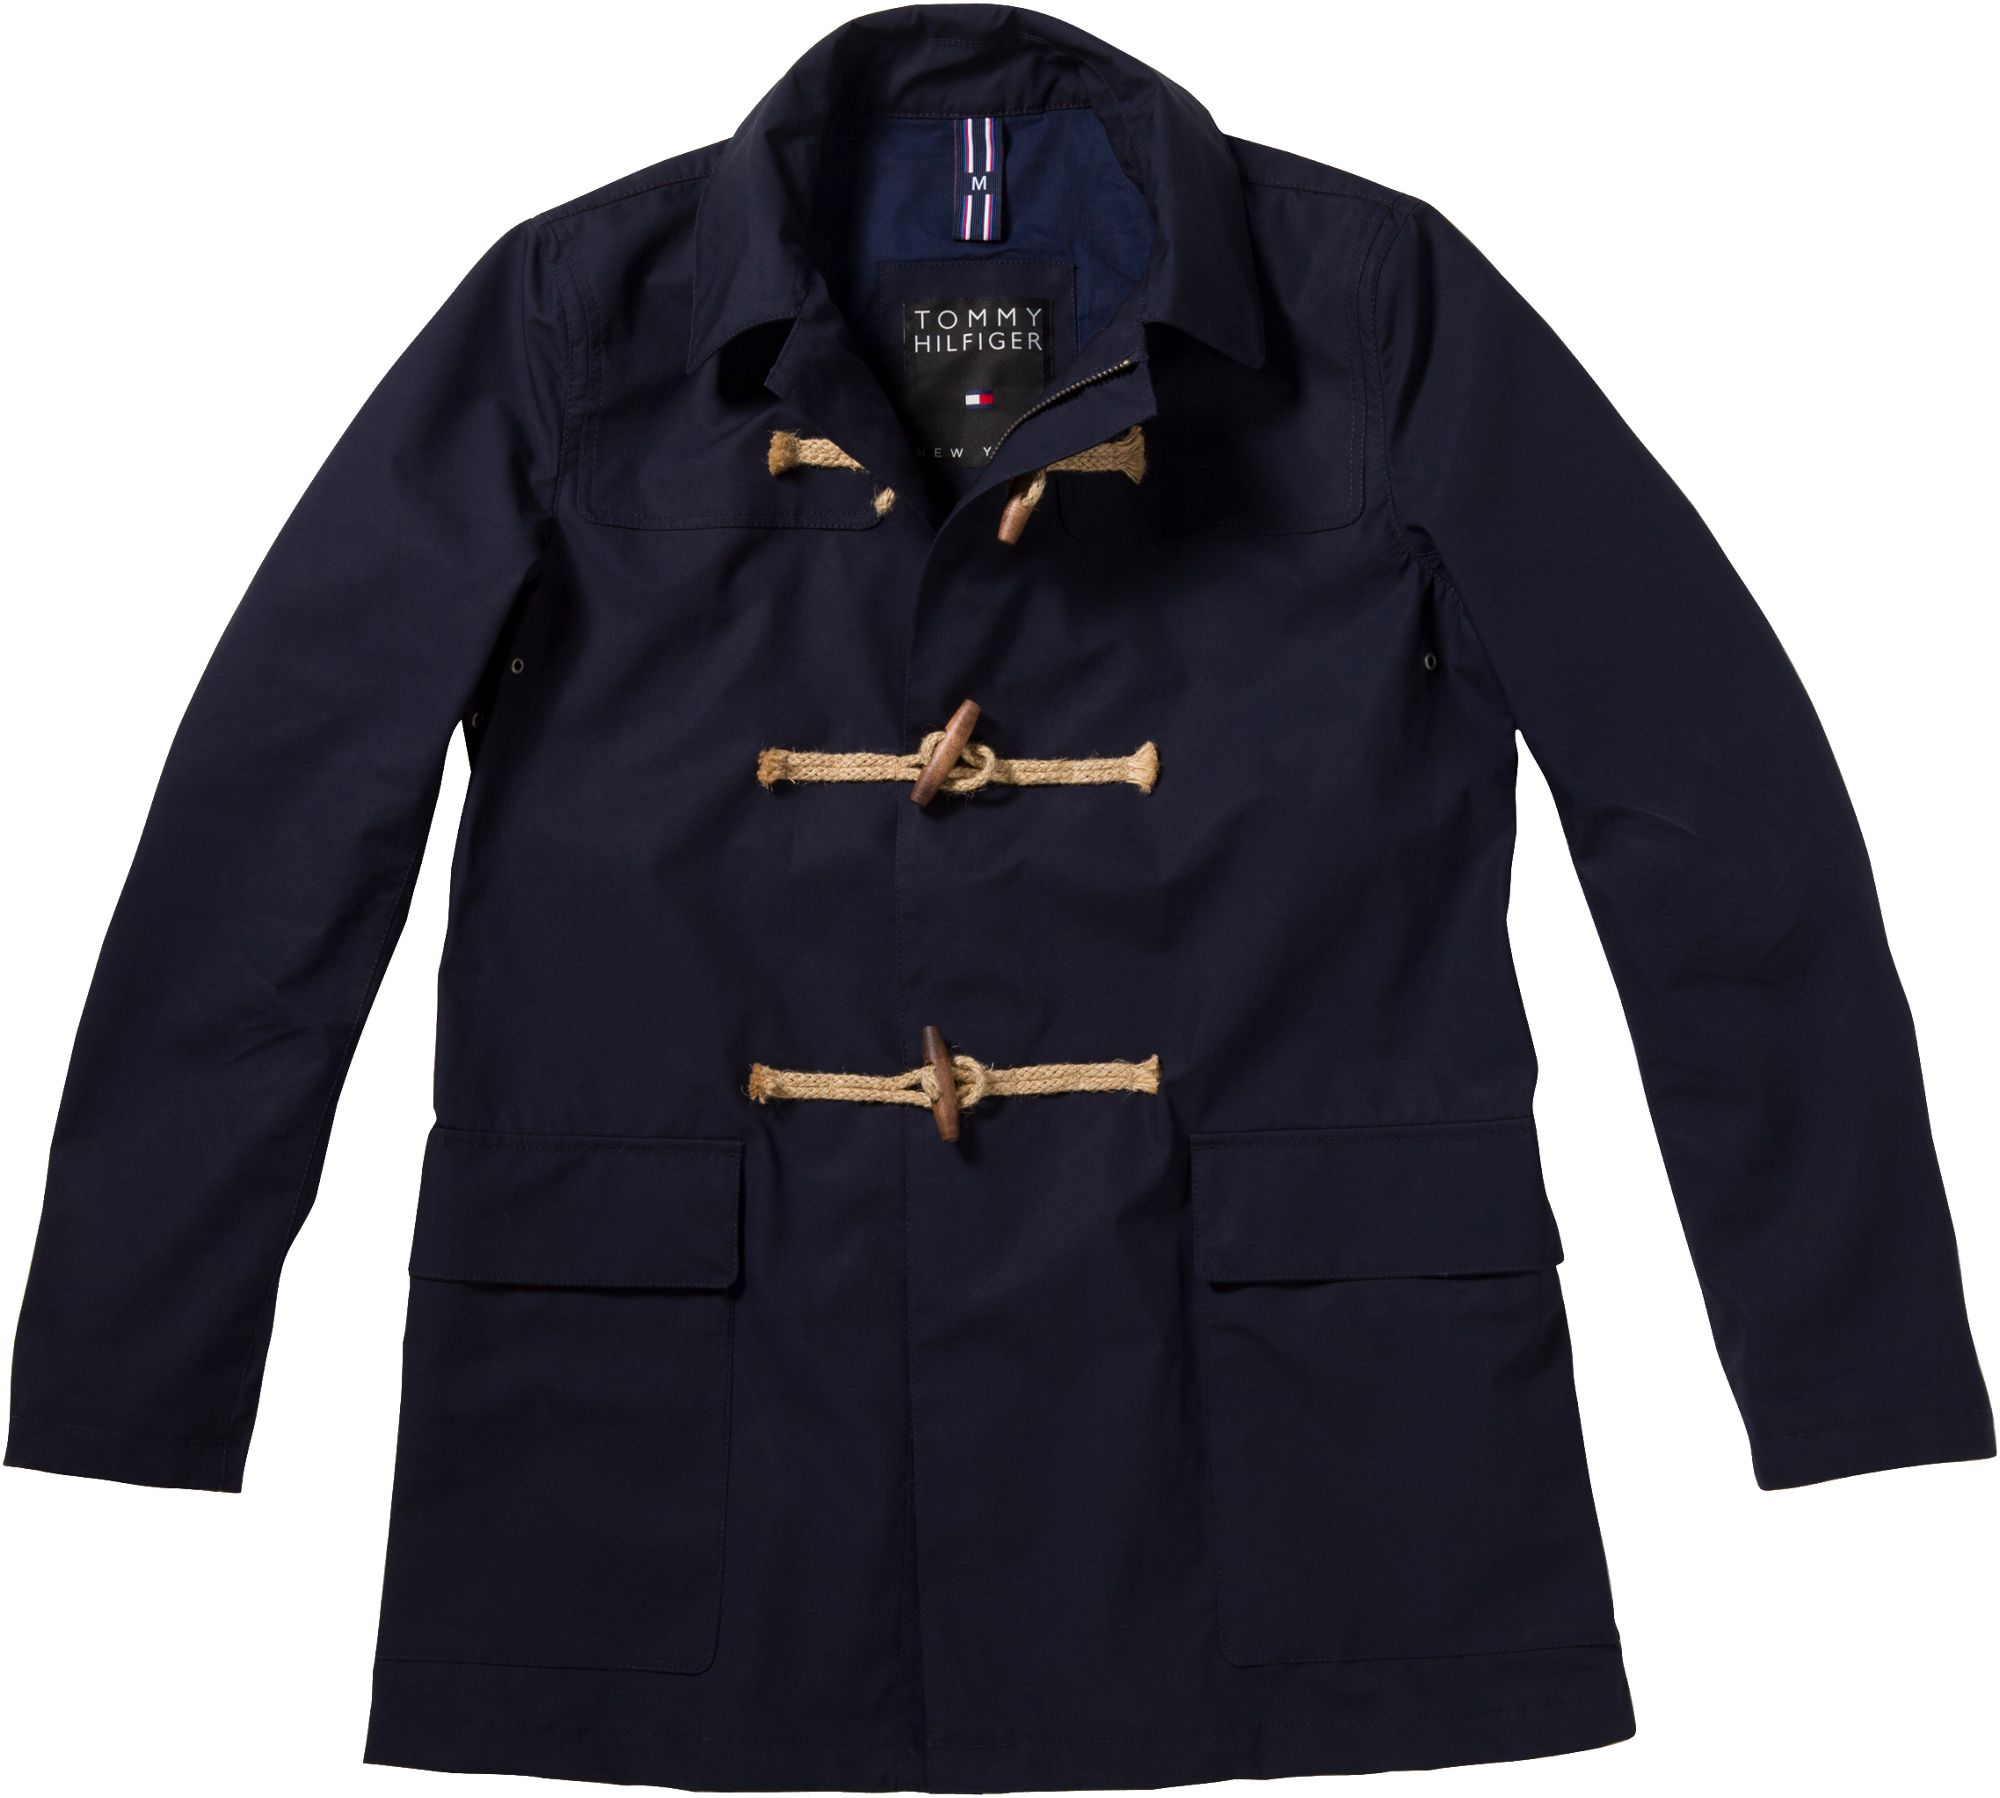 tommy hilfiger davis toggle duffle coat in blue for men navy lyst. Black Bedroom Furniture Sets. Home Design Ideas